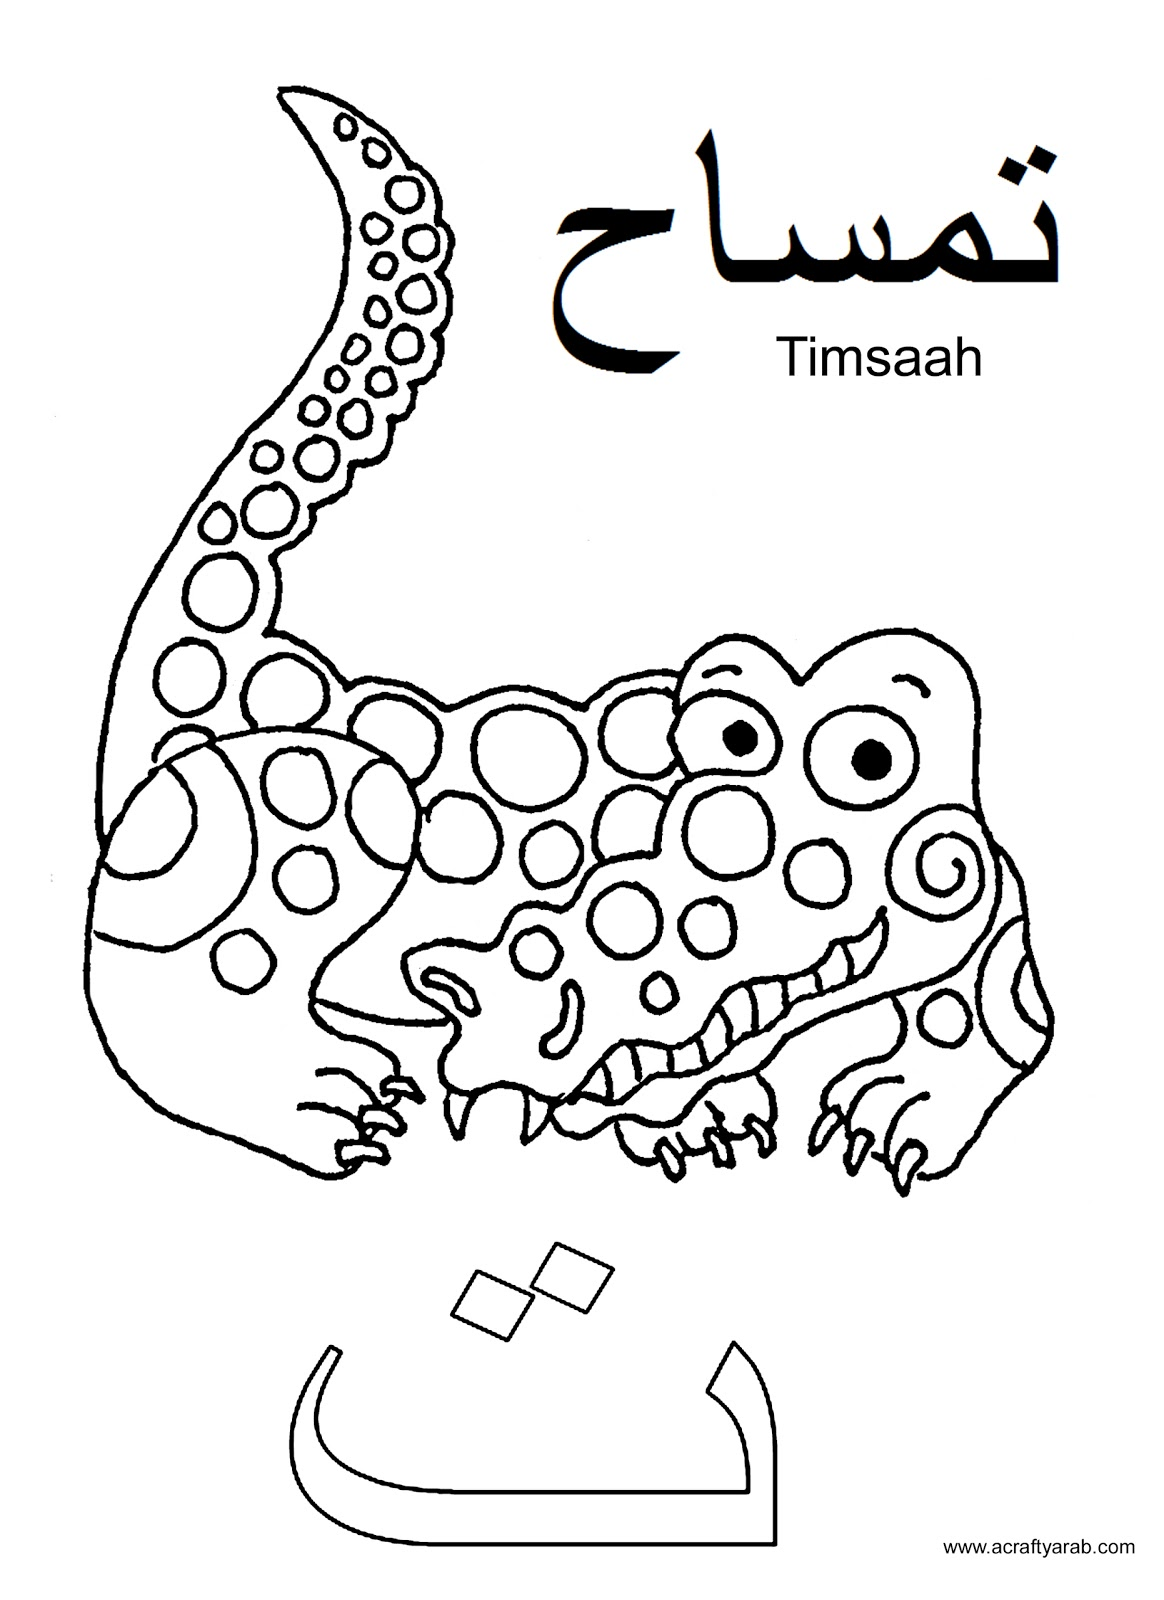 A Crafty Arab: Arabic Alphabet coloring pages...Ta is for